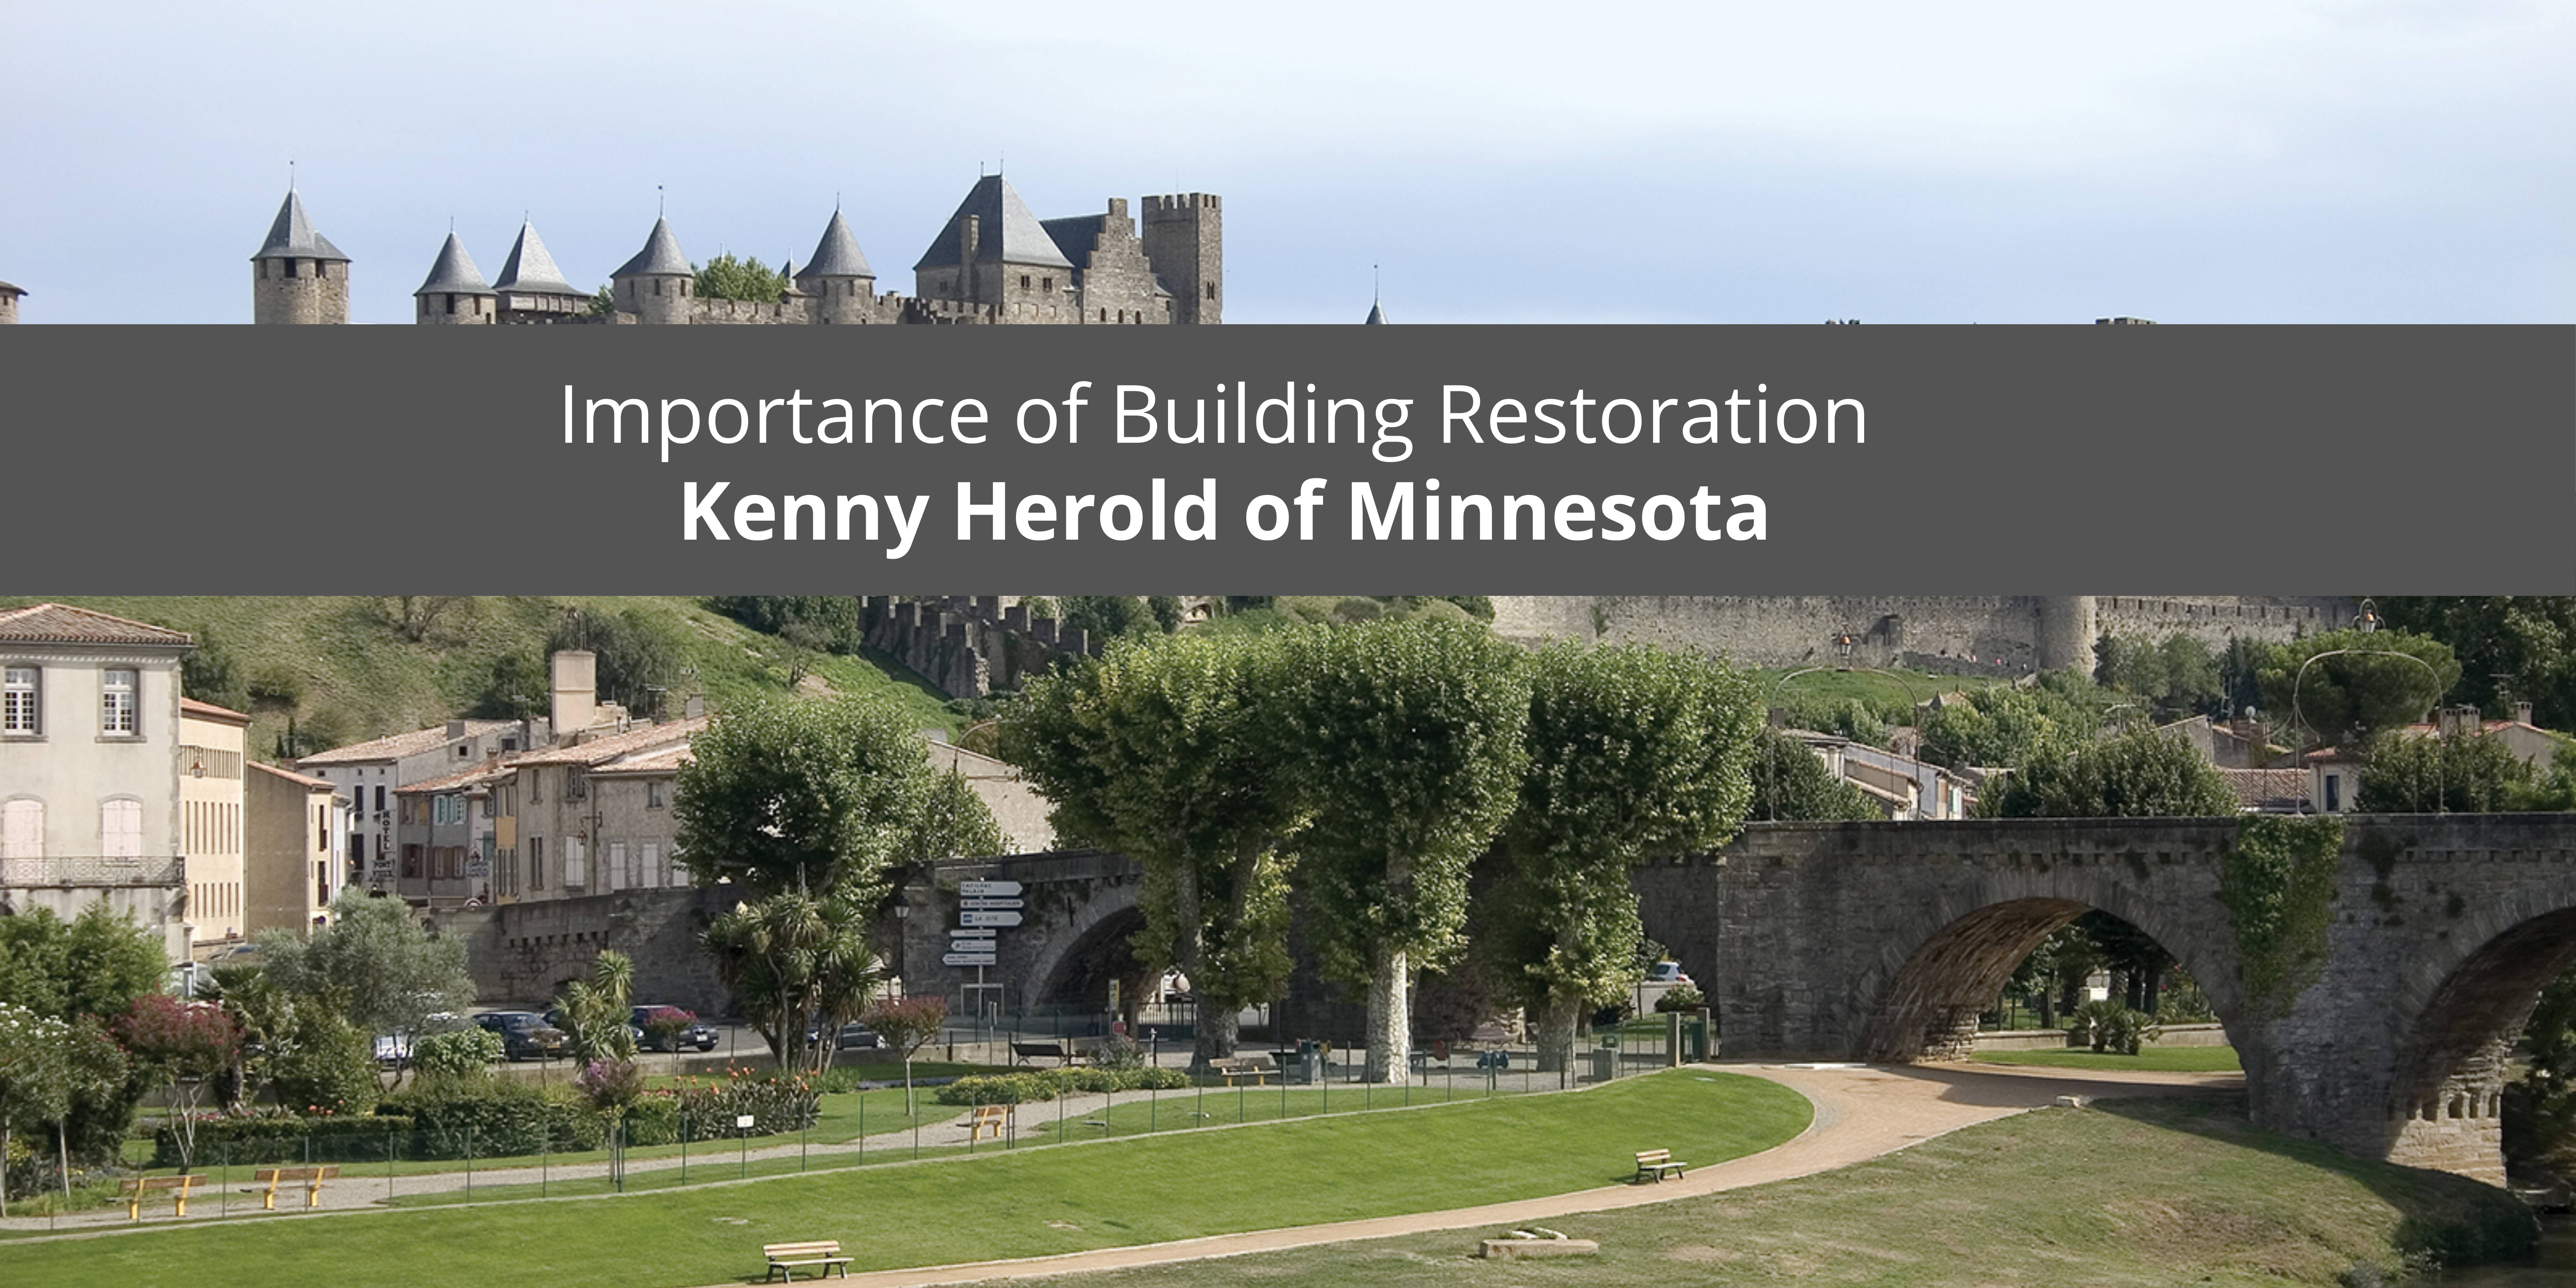 Kenny Herold of Minnesota Gives Oversight into Importance of Building Restoration